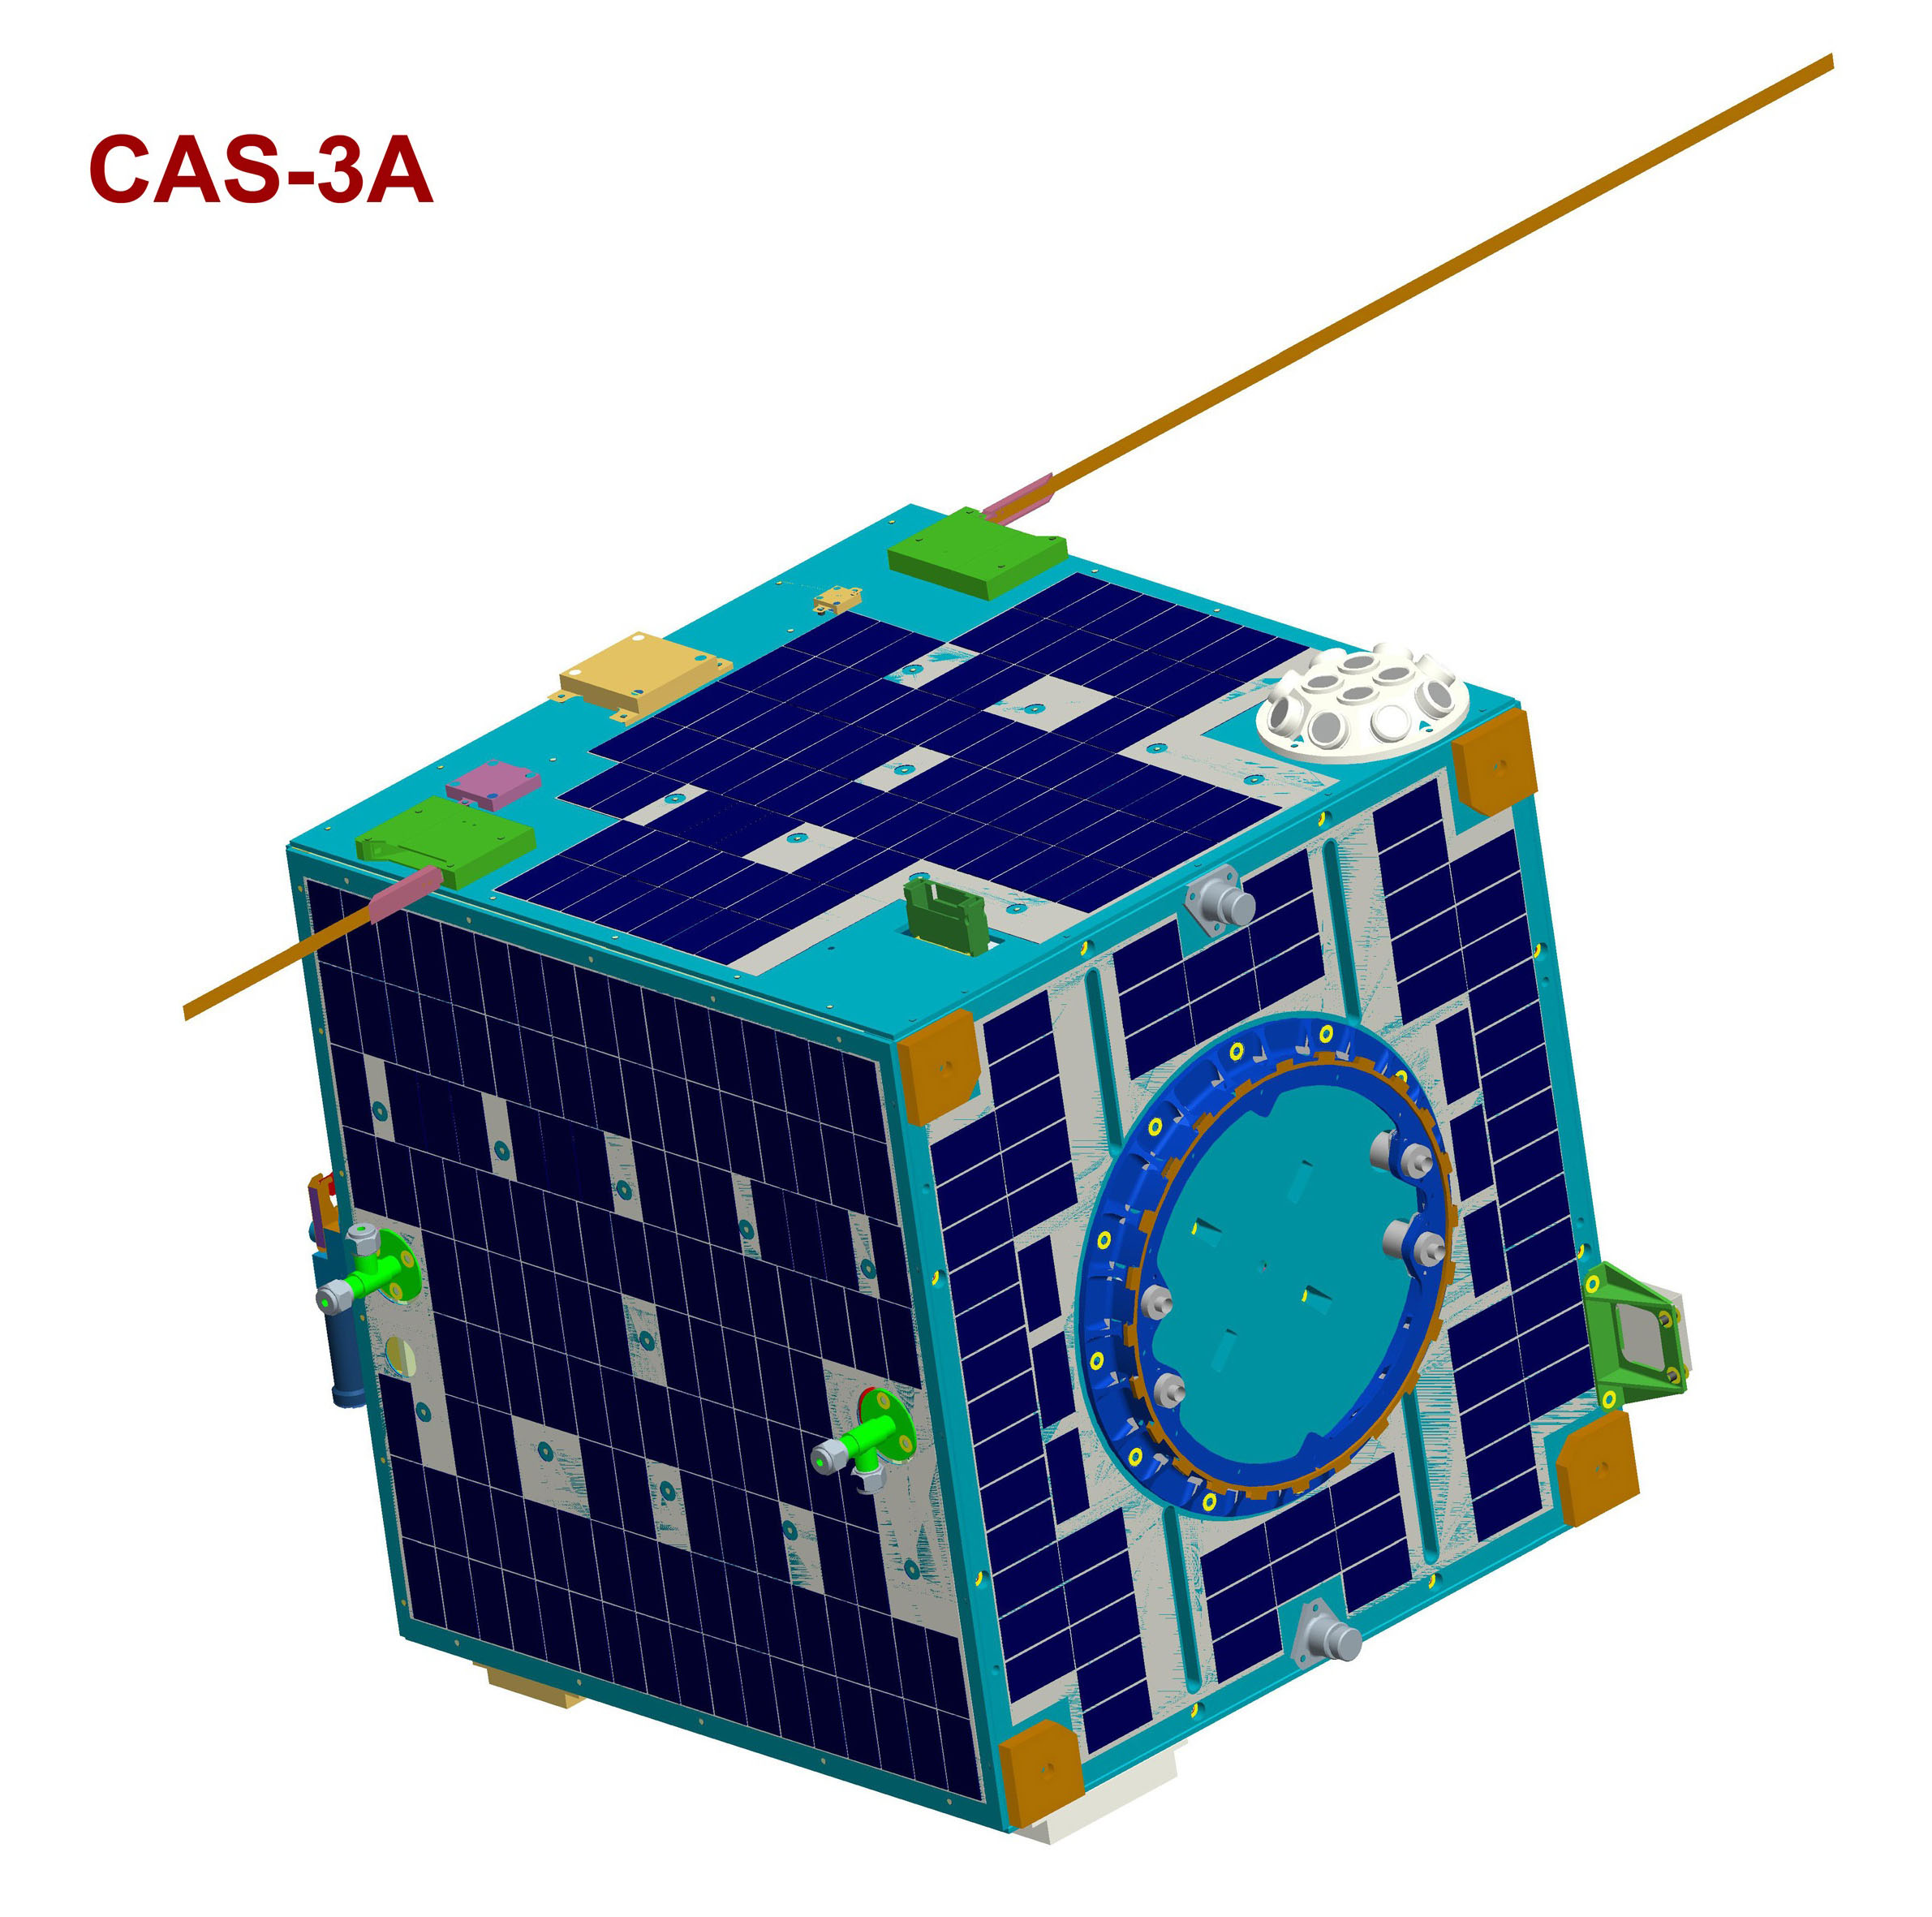 CAS-3A satellite